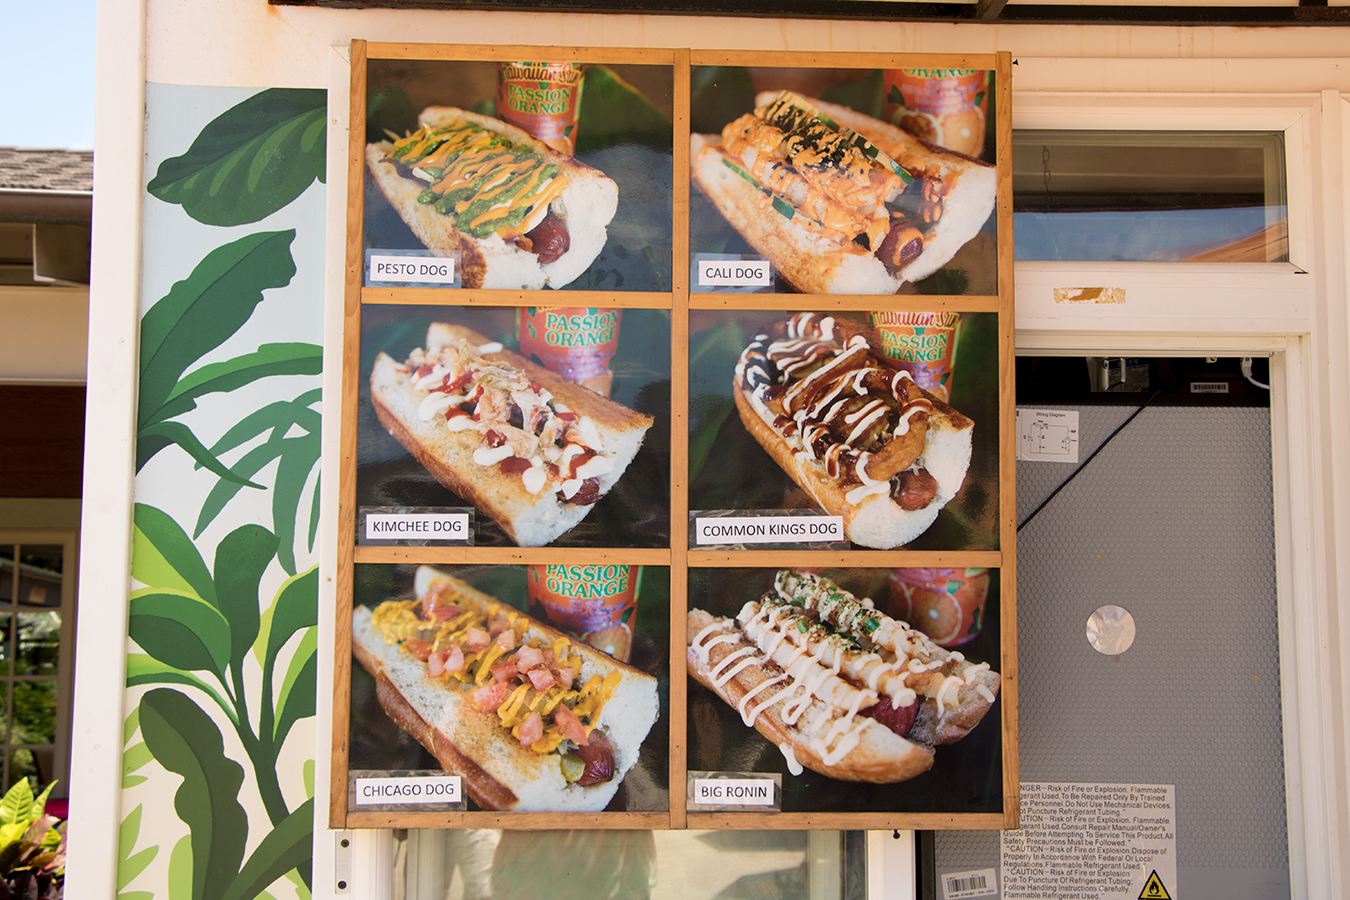 Hale Pop's hot dog menu